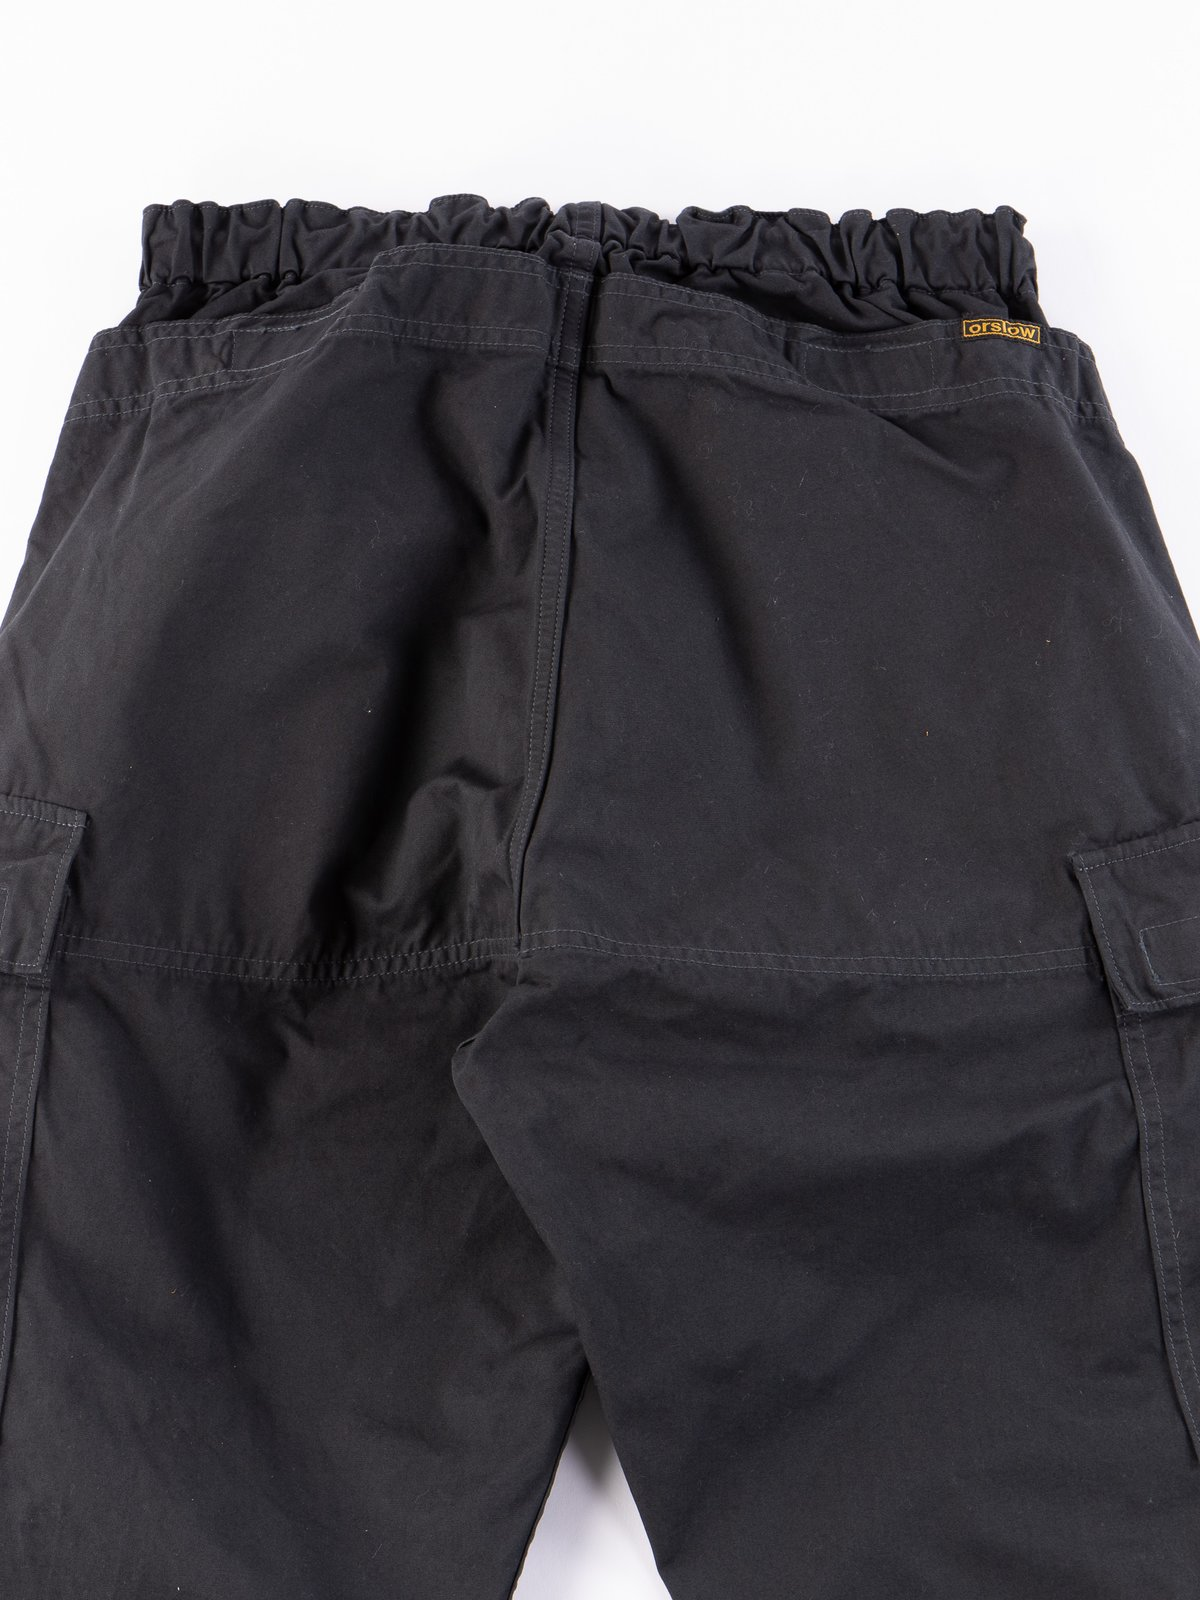 Grey Weather Cloth Easy Cargo Pant - Image 10